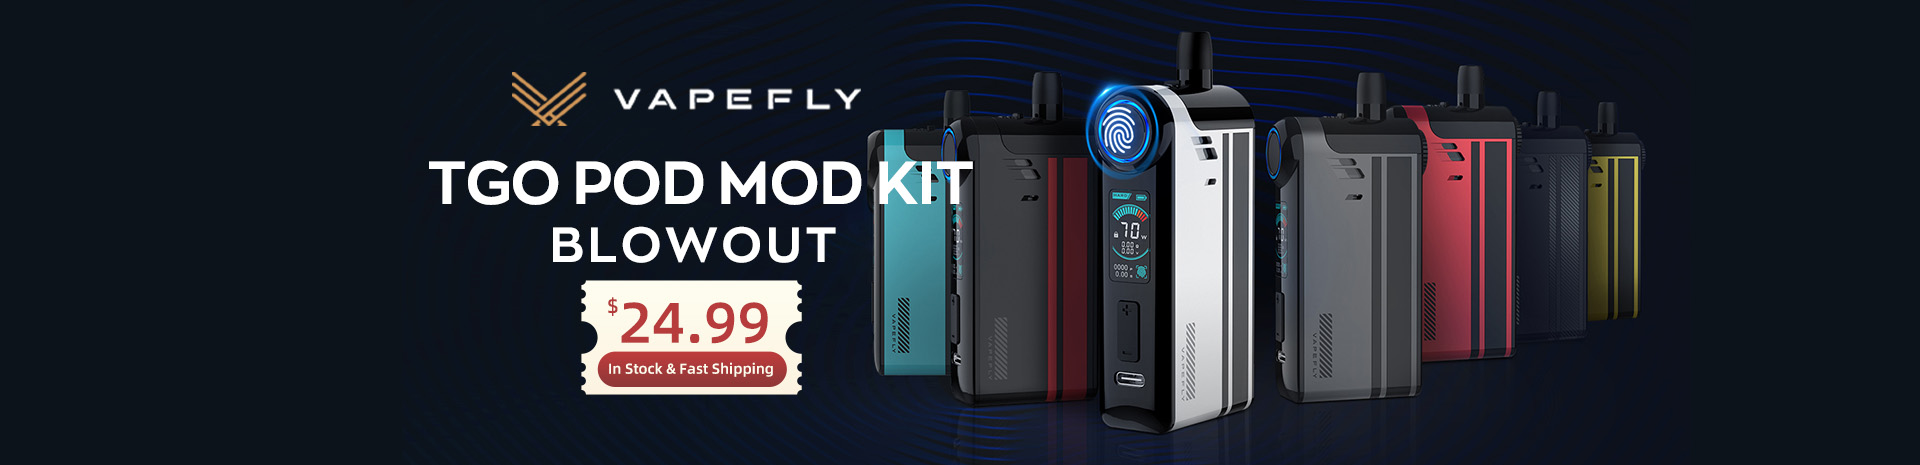 Vapefly TGO Pod Mod Kit Blowout